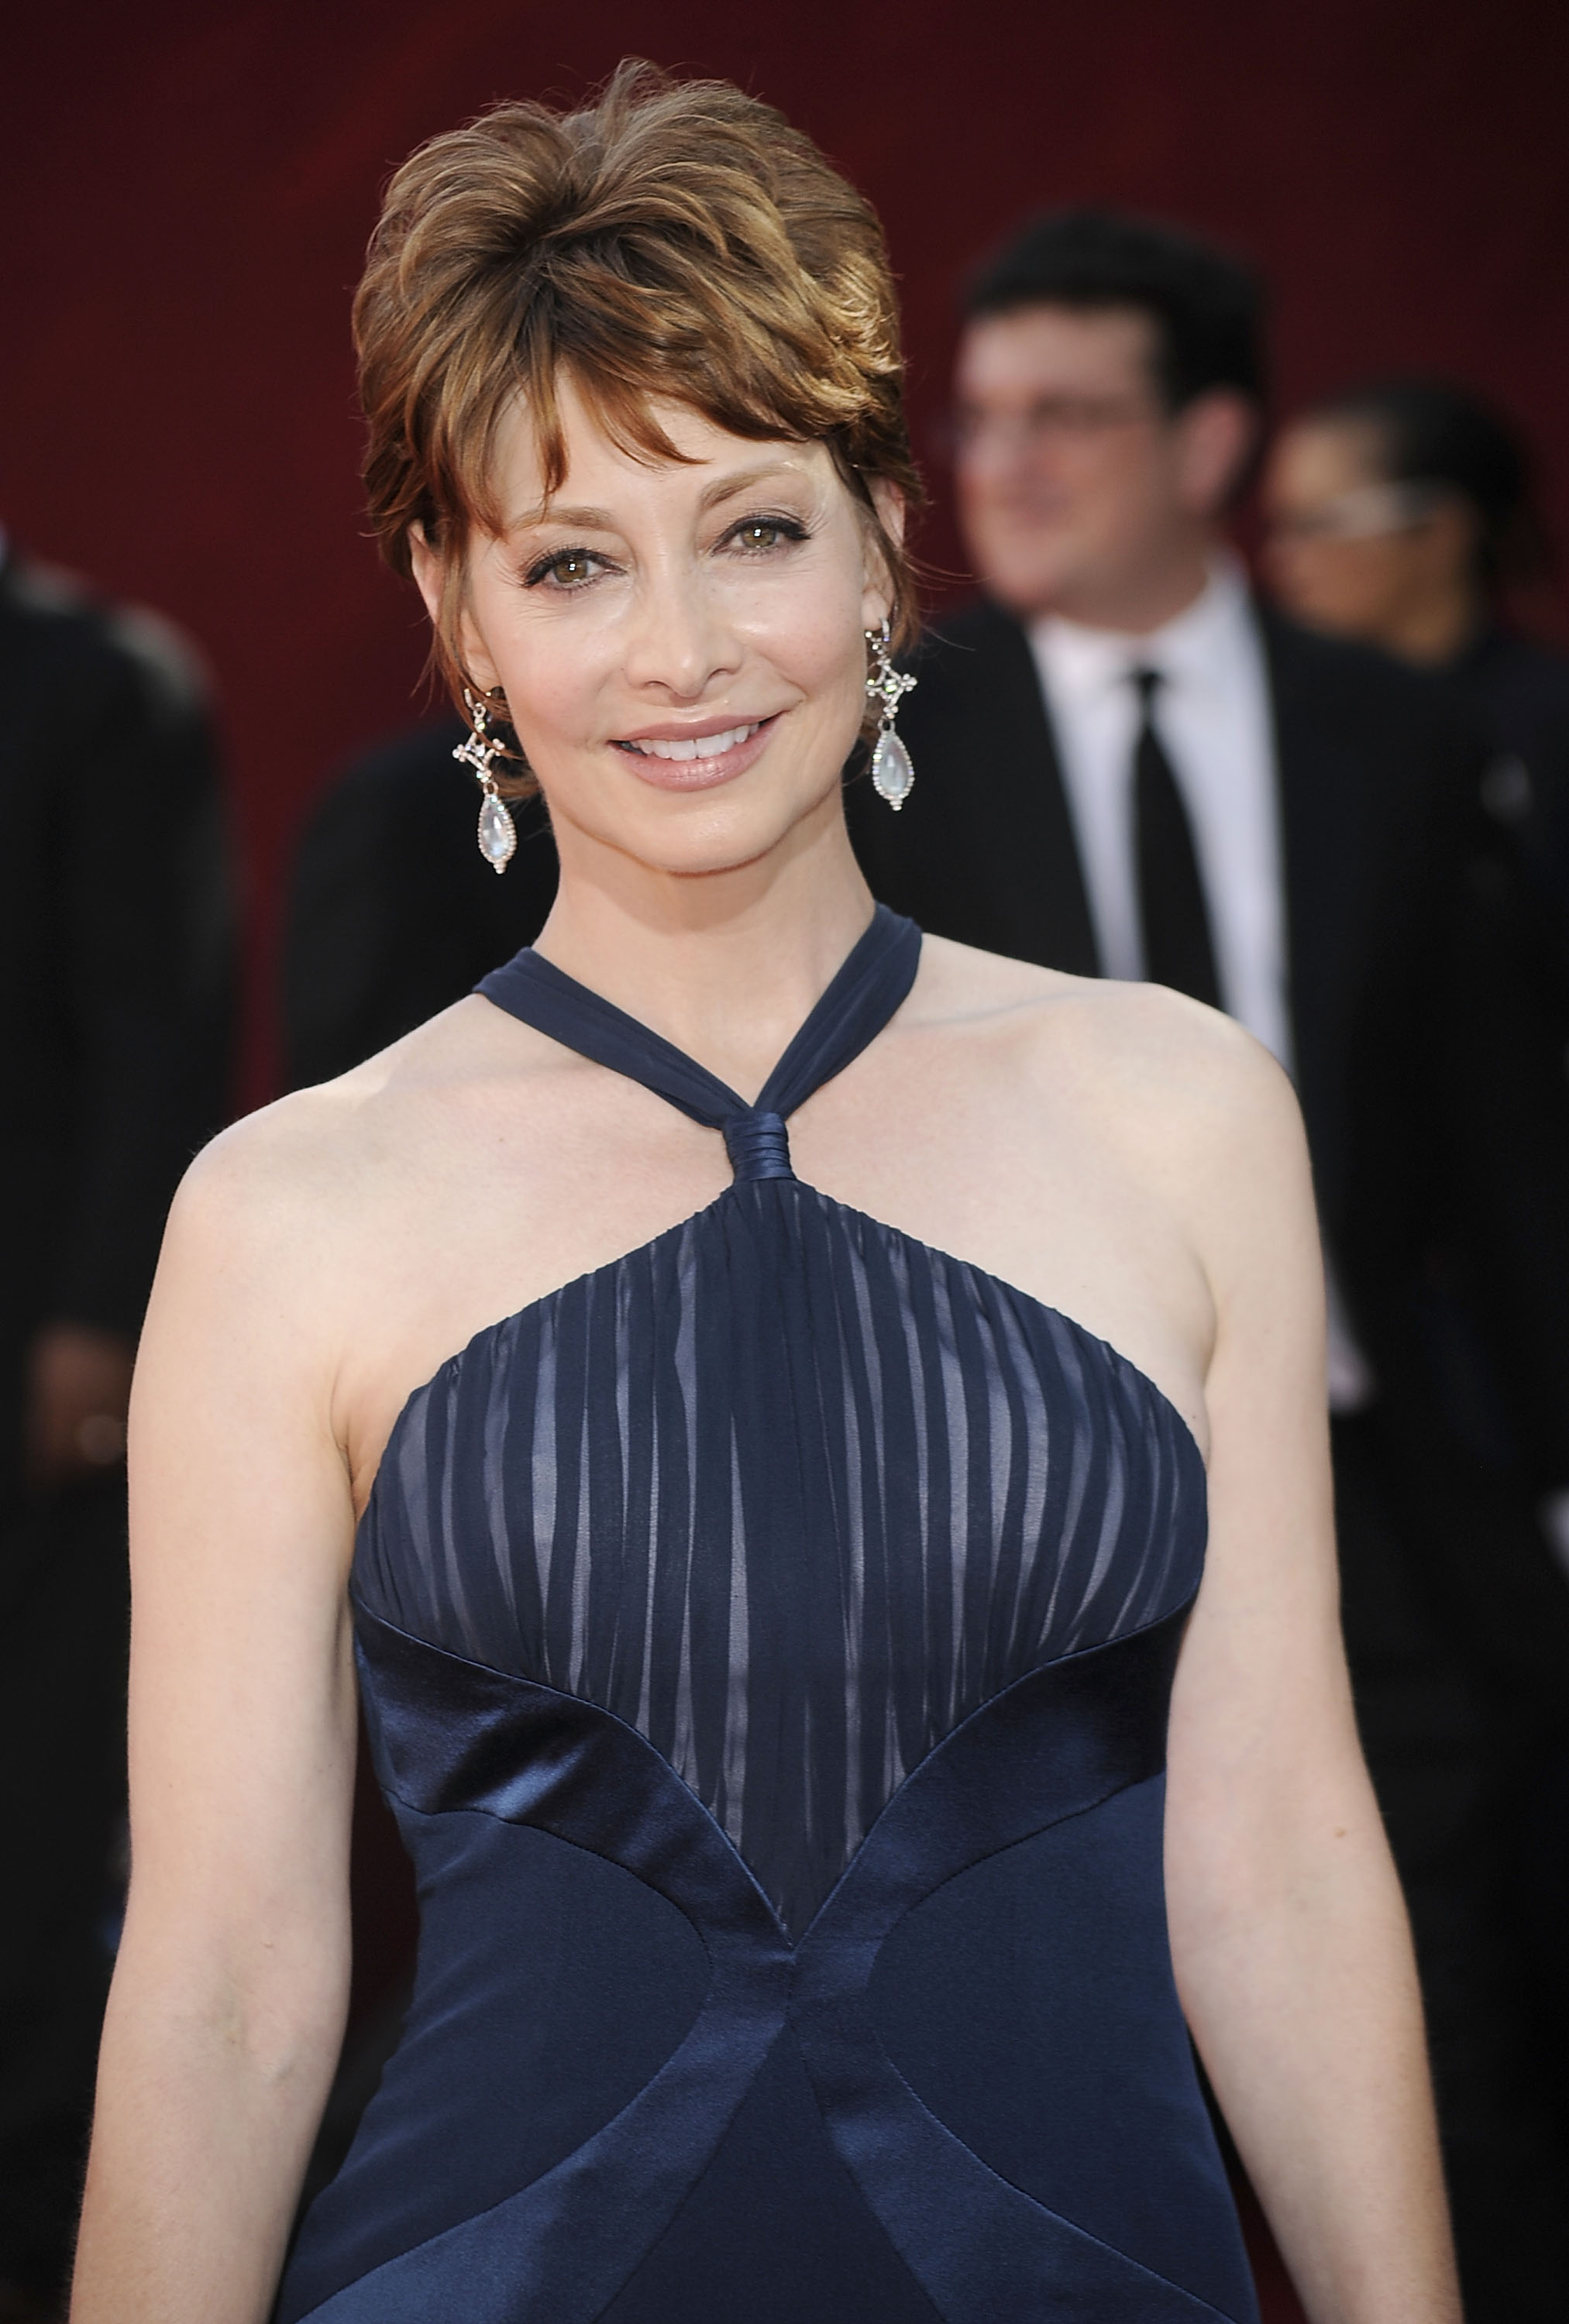 sharon lawrence jimi hendrixsharon lawrence jimi hendrix, sharon lawrence net worth, sharon lawrence, sharon lawrence imdb, sharon lawrence twitter, sharon lawrence dance, sharon lawrence feet, sharon lawrence measurements, sharon lawrence hot, sharon lawrence nypd blue, sharon lawrence husband, sharon lawrence legs, sharon lawrence casting, sharon lawrence images, sharon lawrence hairstyles, sharon lawrence facebook